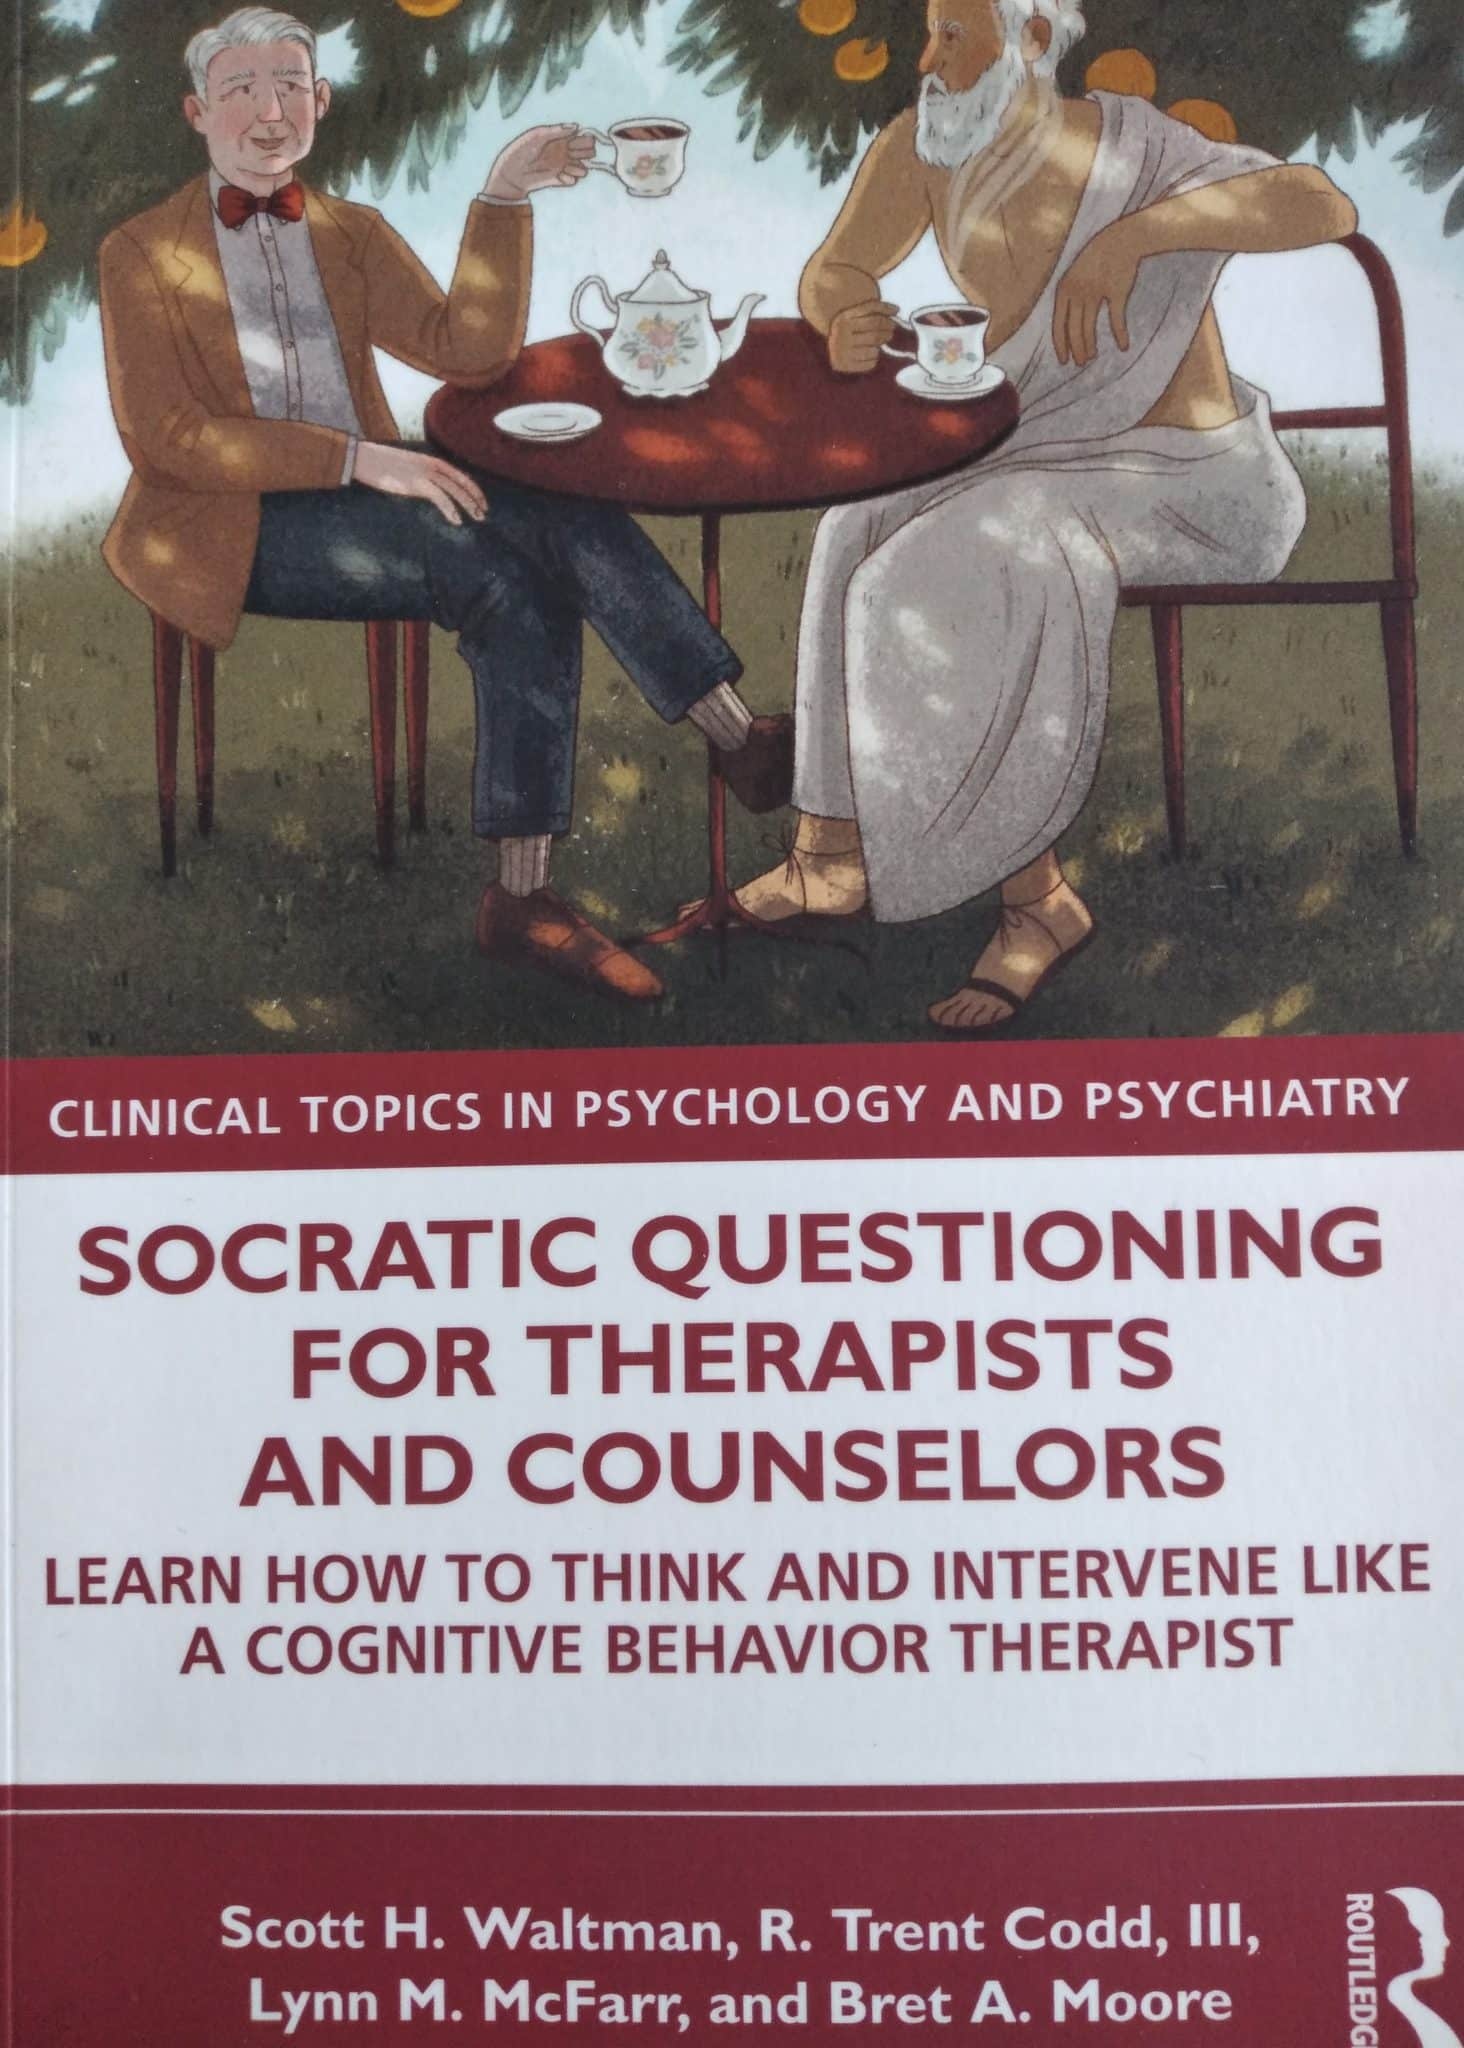 Socratic Questioning For Therapists And Counselors. Learn How To Think And Intervene Like A Cognitive Behavior Therapist